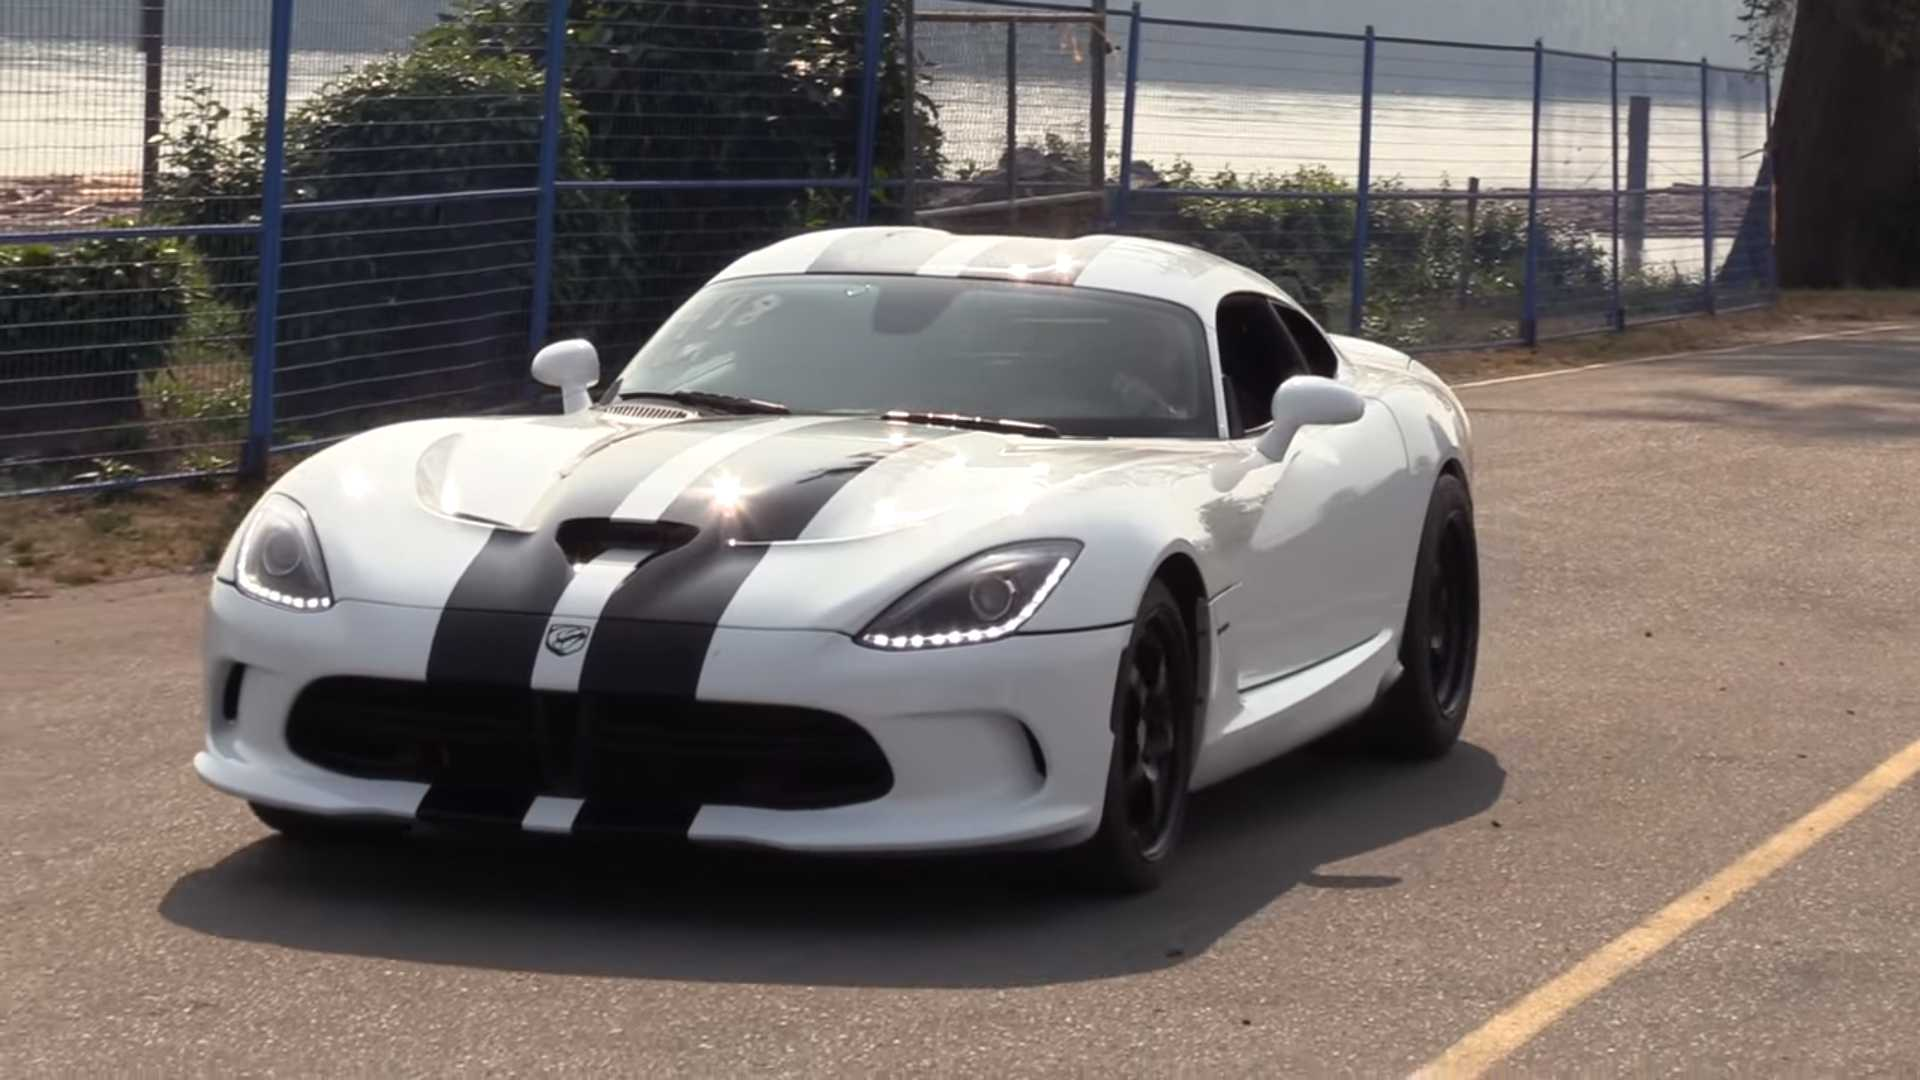 40 The Best 2020 Dodge Viper Youtube Concept